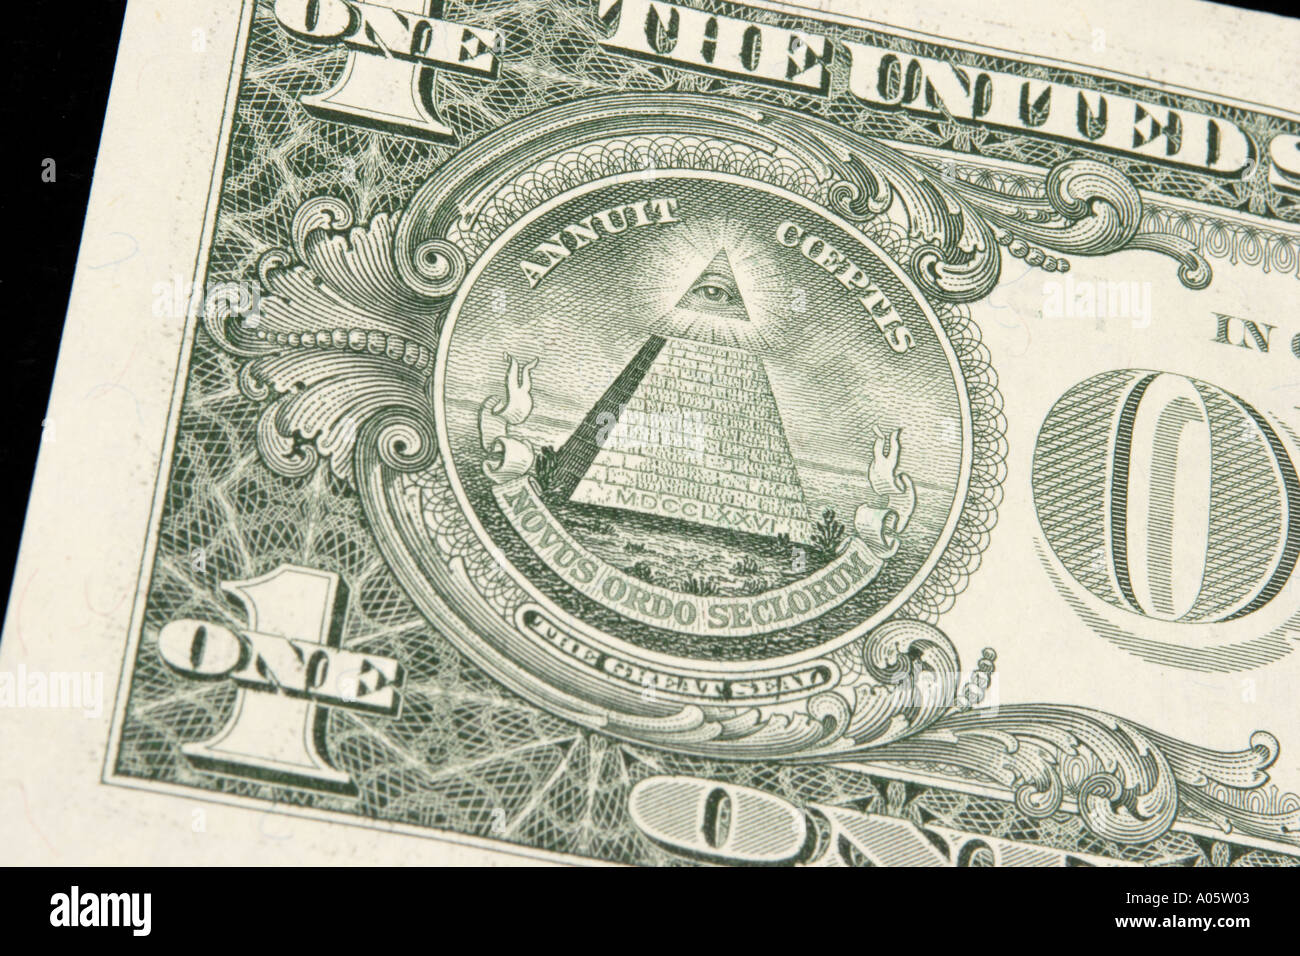 Masonic symbol of eye and pyramid stock photos masonic symbol of money usa american currency masonic image on back of one dollar bill stock image biocorpaavc Images